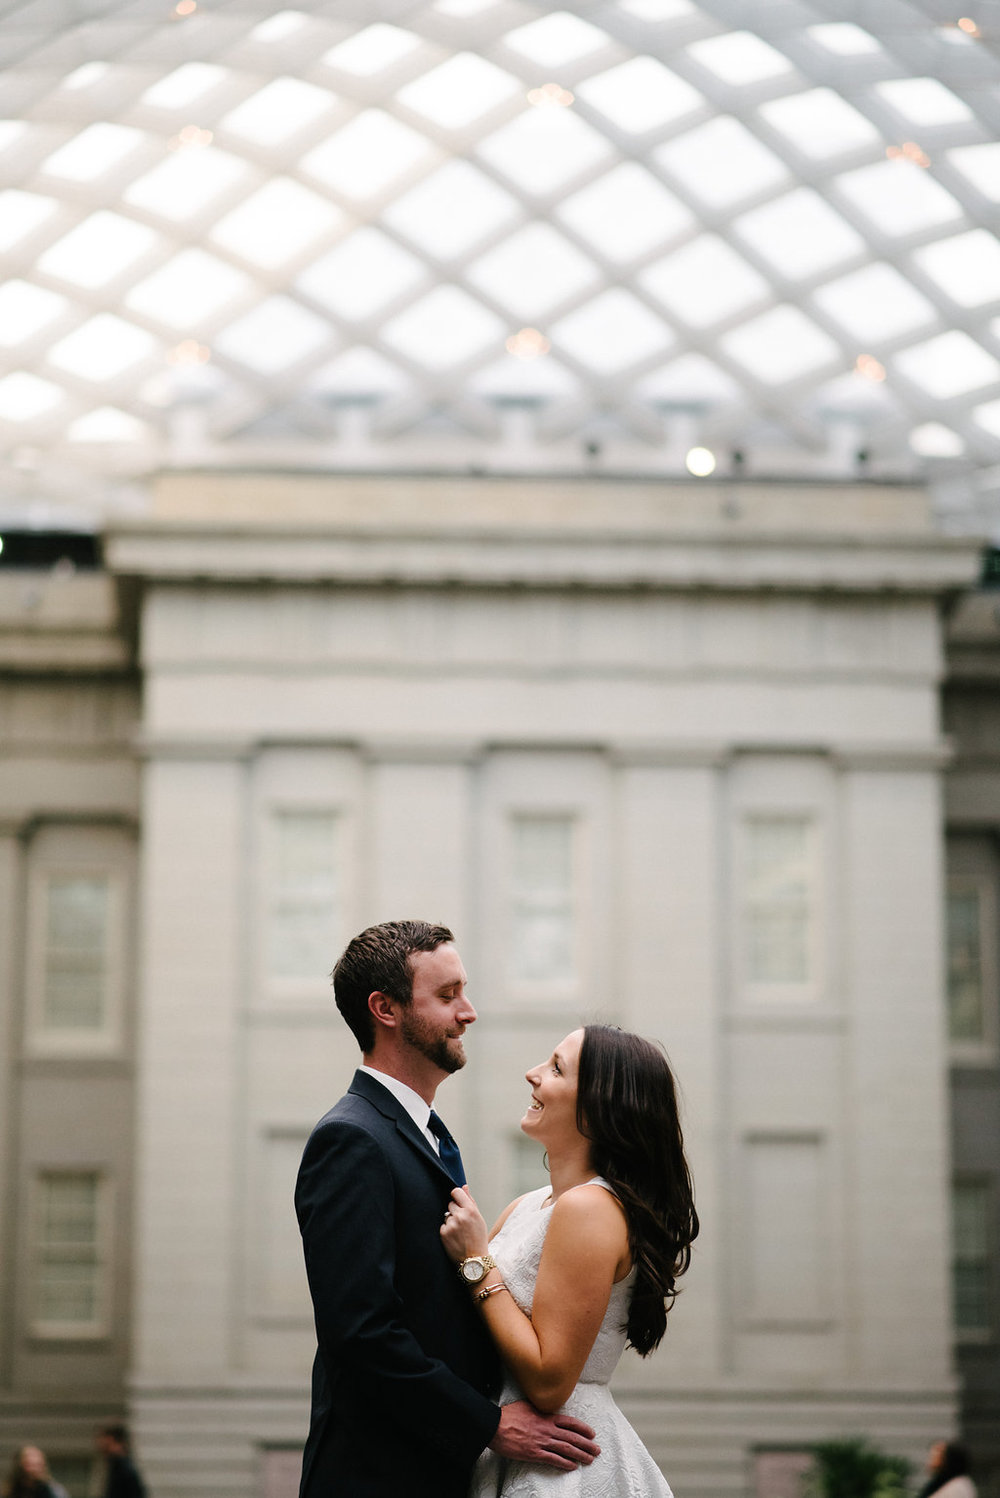 fun engagement portraits in the mezzanine at the national portrait gallery